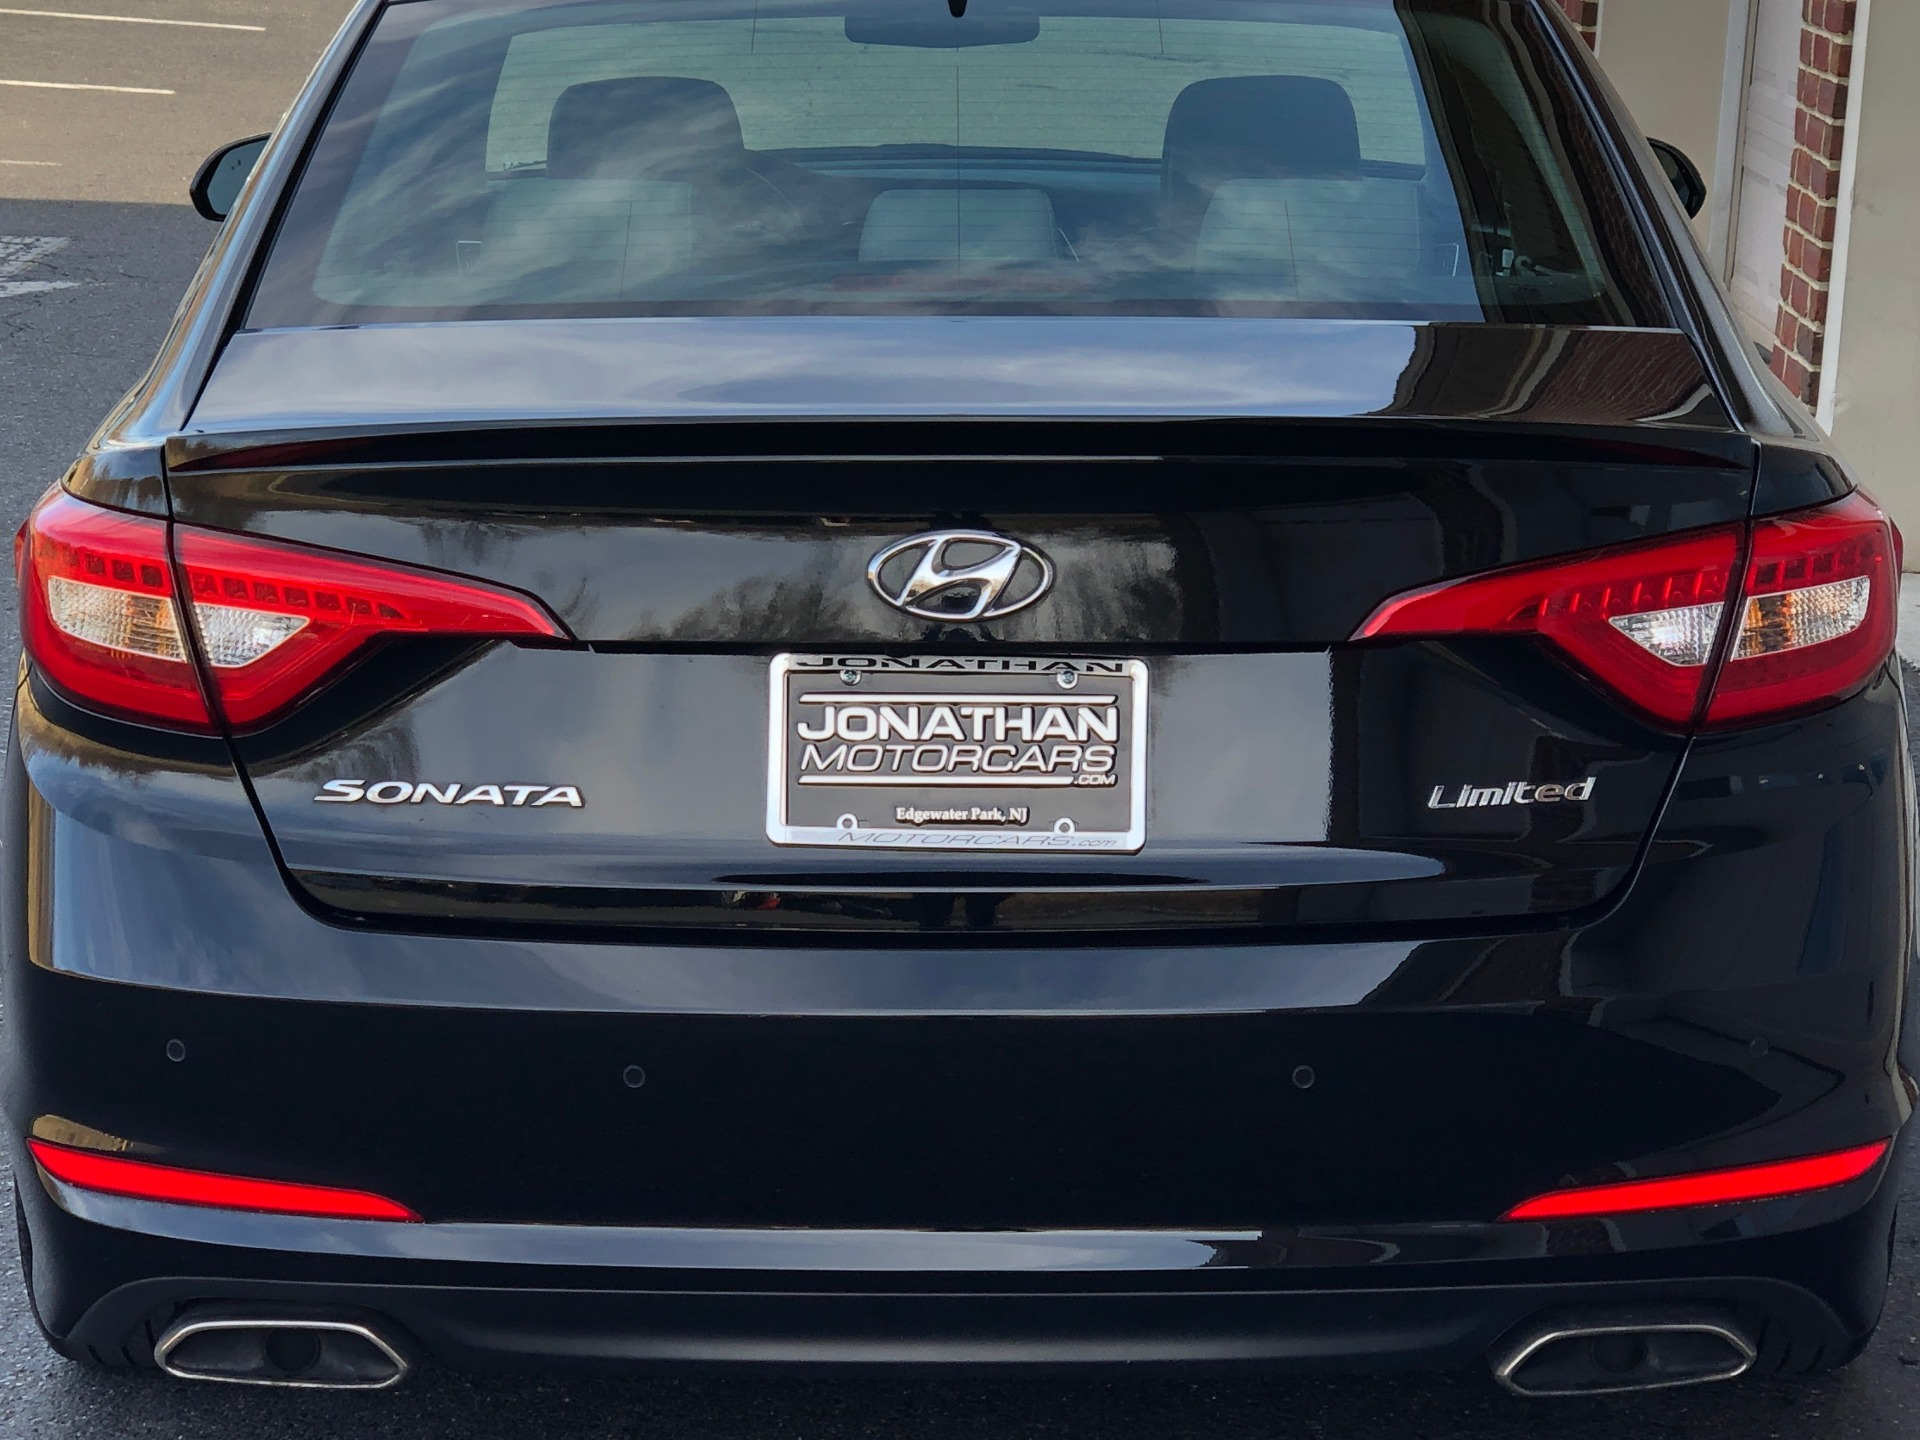 Used-2016-Hyundai-Sonata-Limited